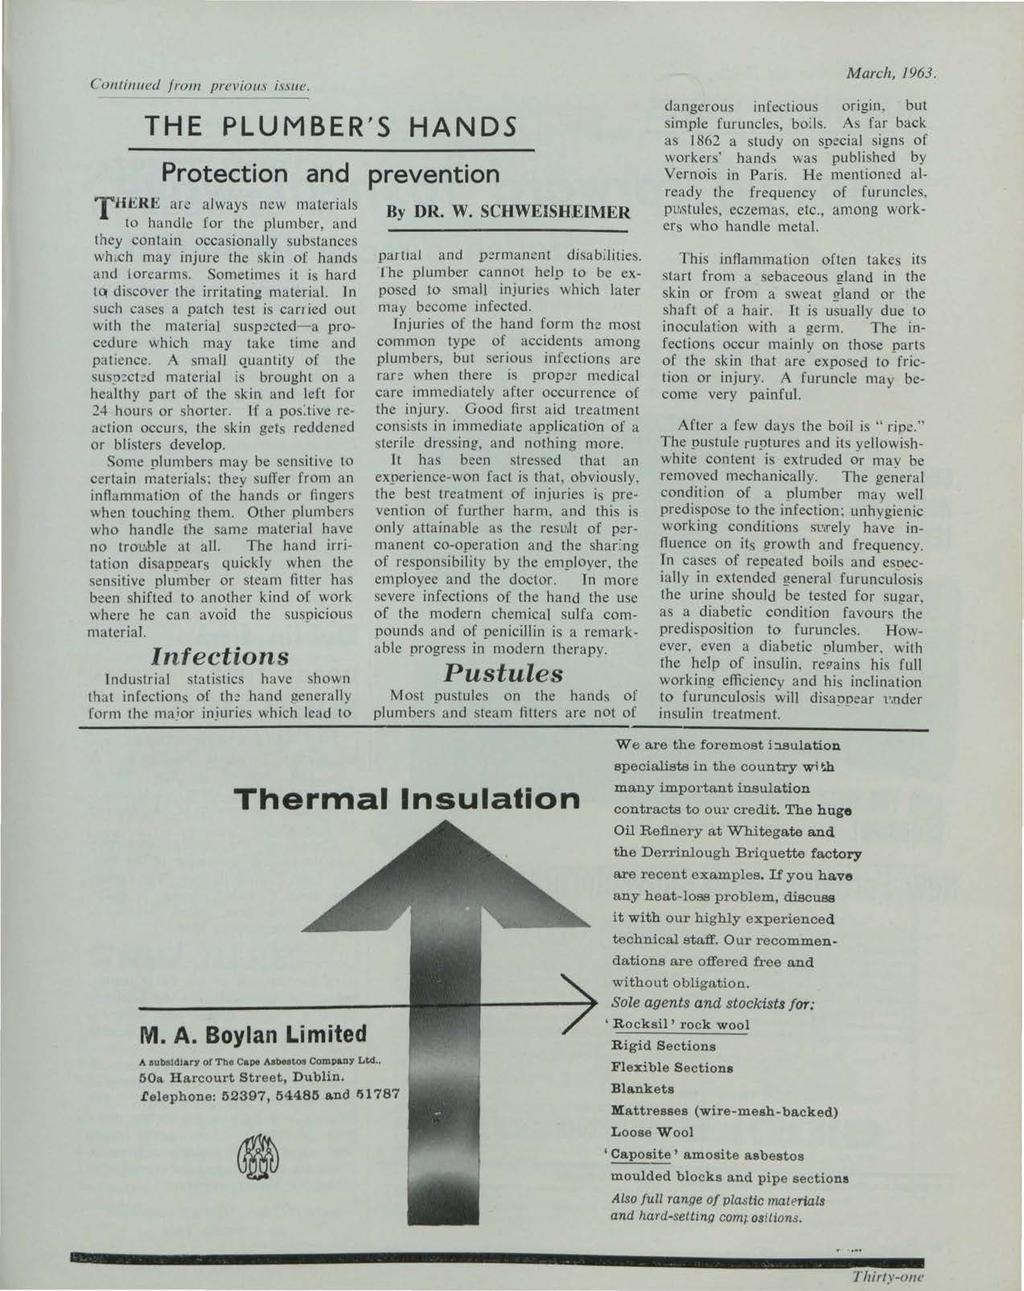 et al.: The Irish Plumber and Heating Contractor, March 1963 (complete is Continued /roll/ previou.1 issue.